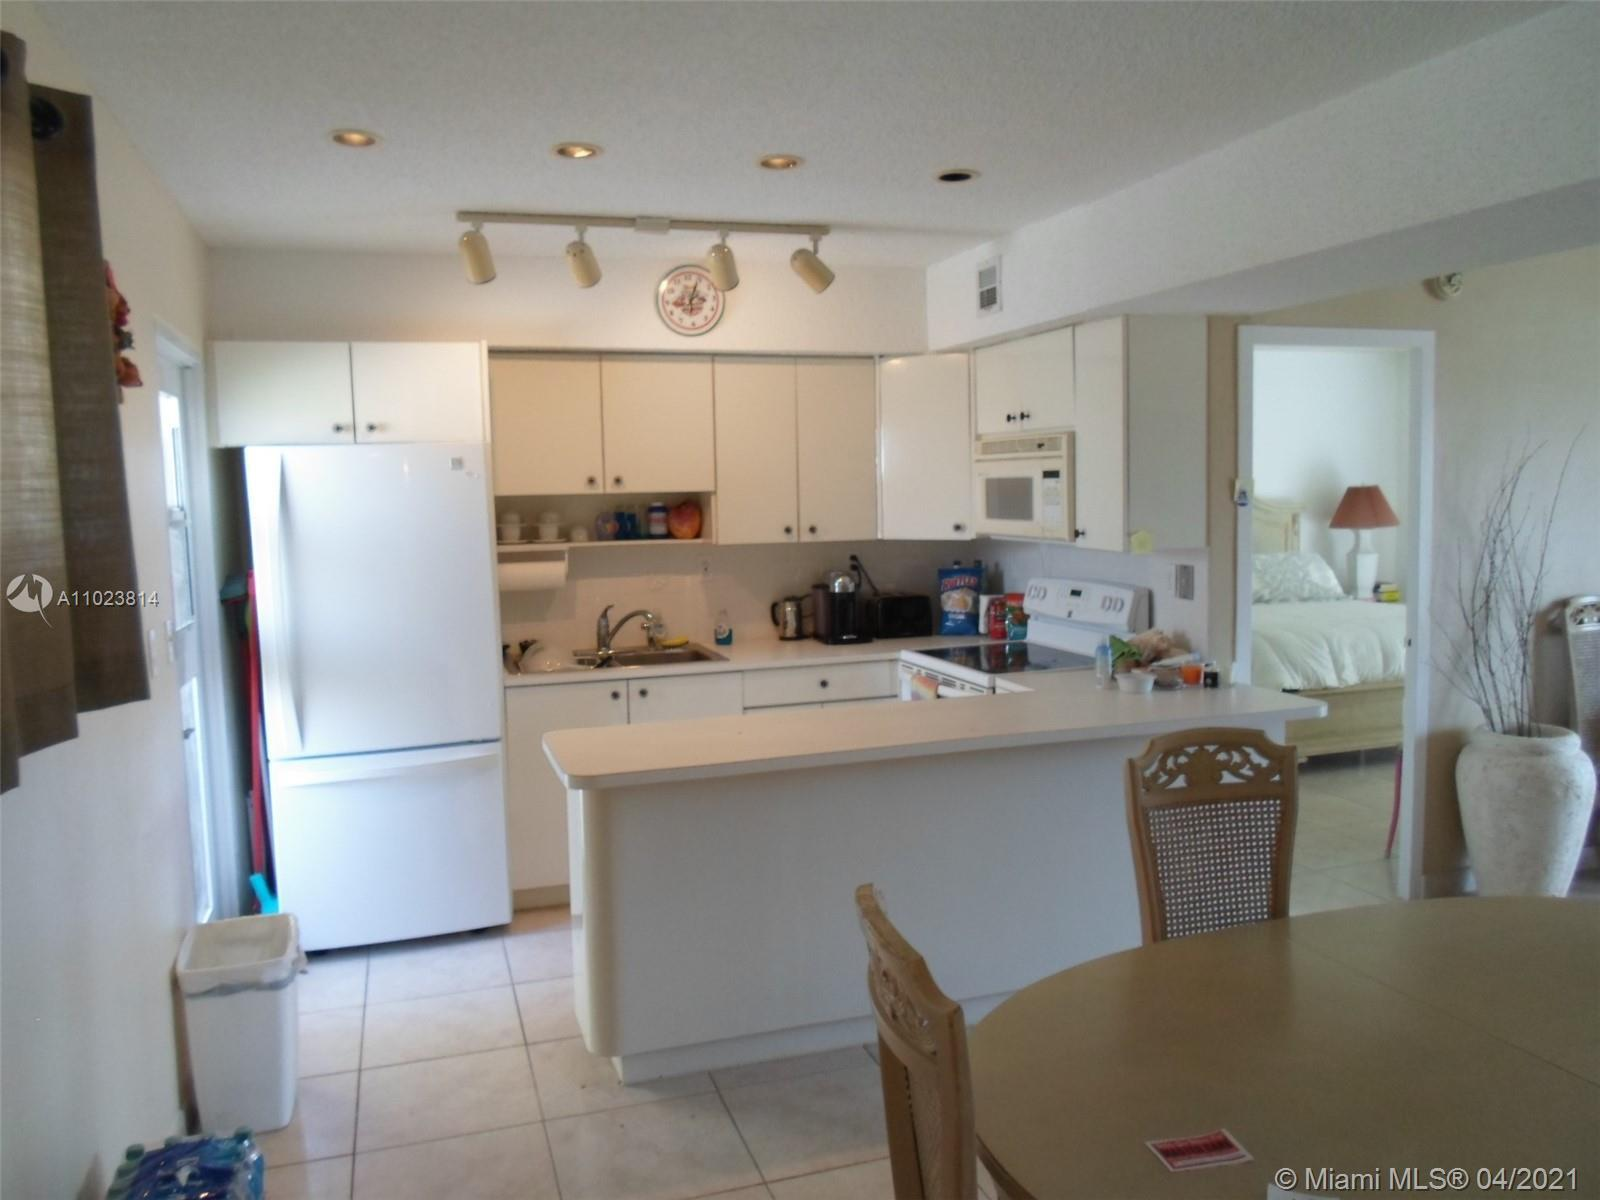 Price is Firm! Best priced oceanfront unit in the heart of Hallandale Beach. Great size for a 2 bed